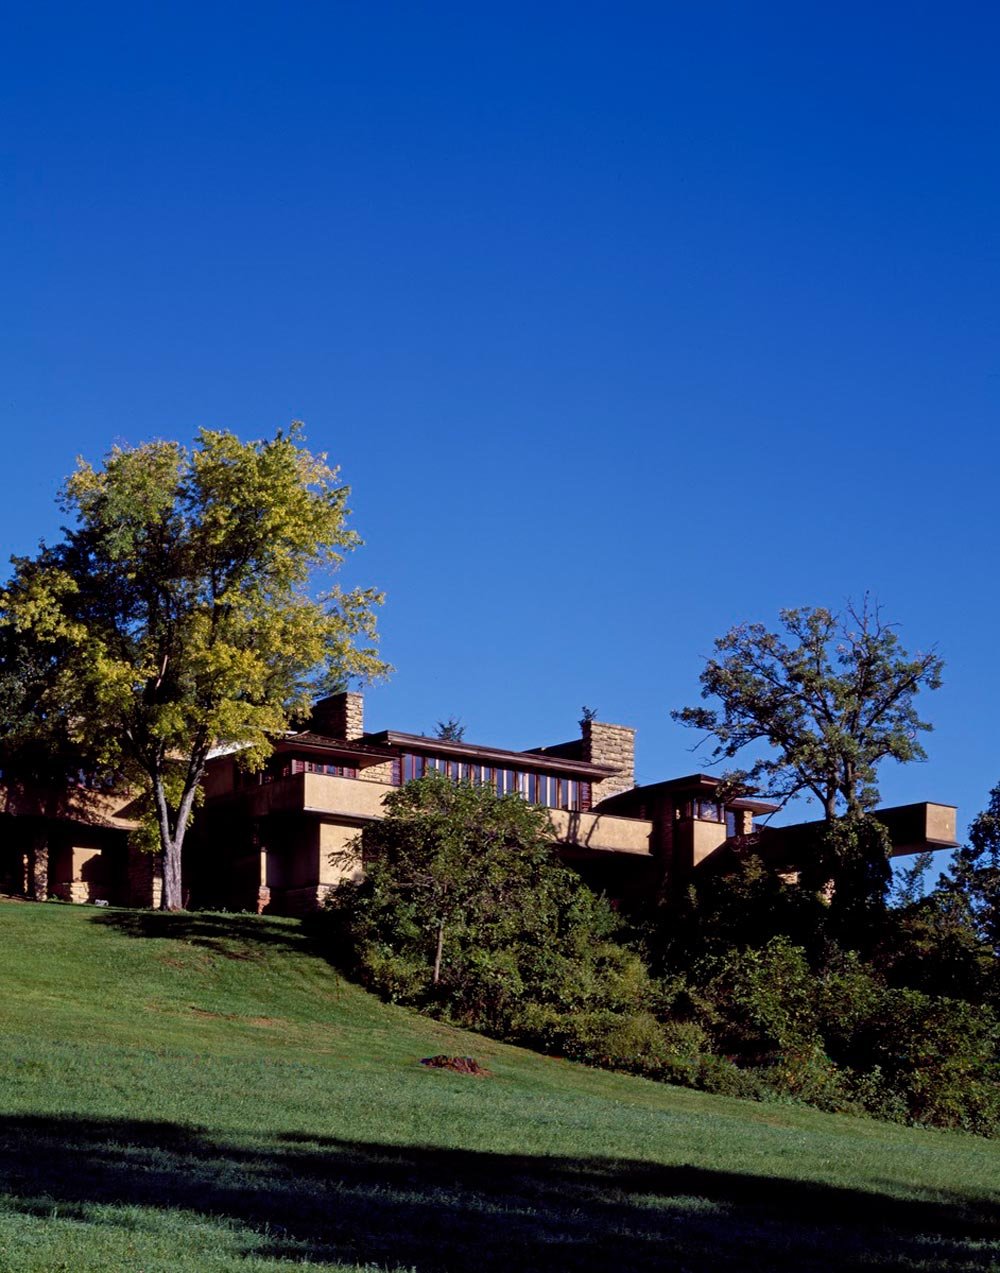 The 20th-Century Architecture of Frank Lloyd Wright was designated a World Heritage Site in 2019.